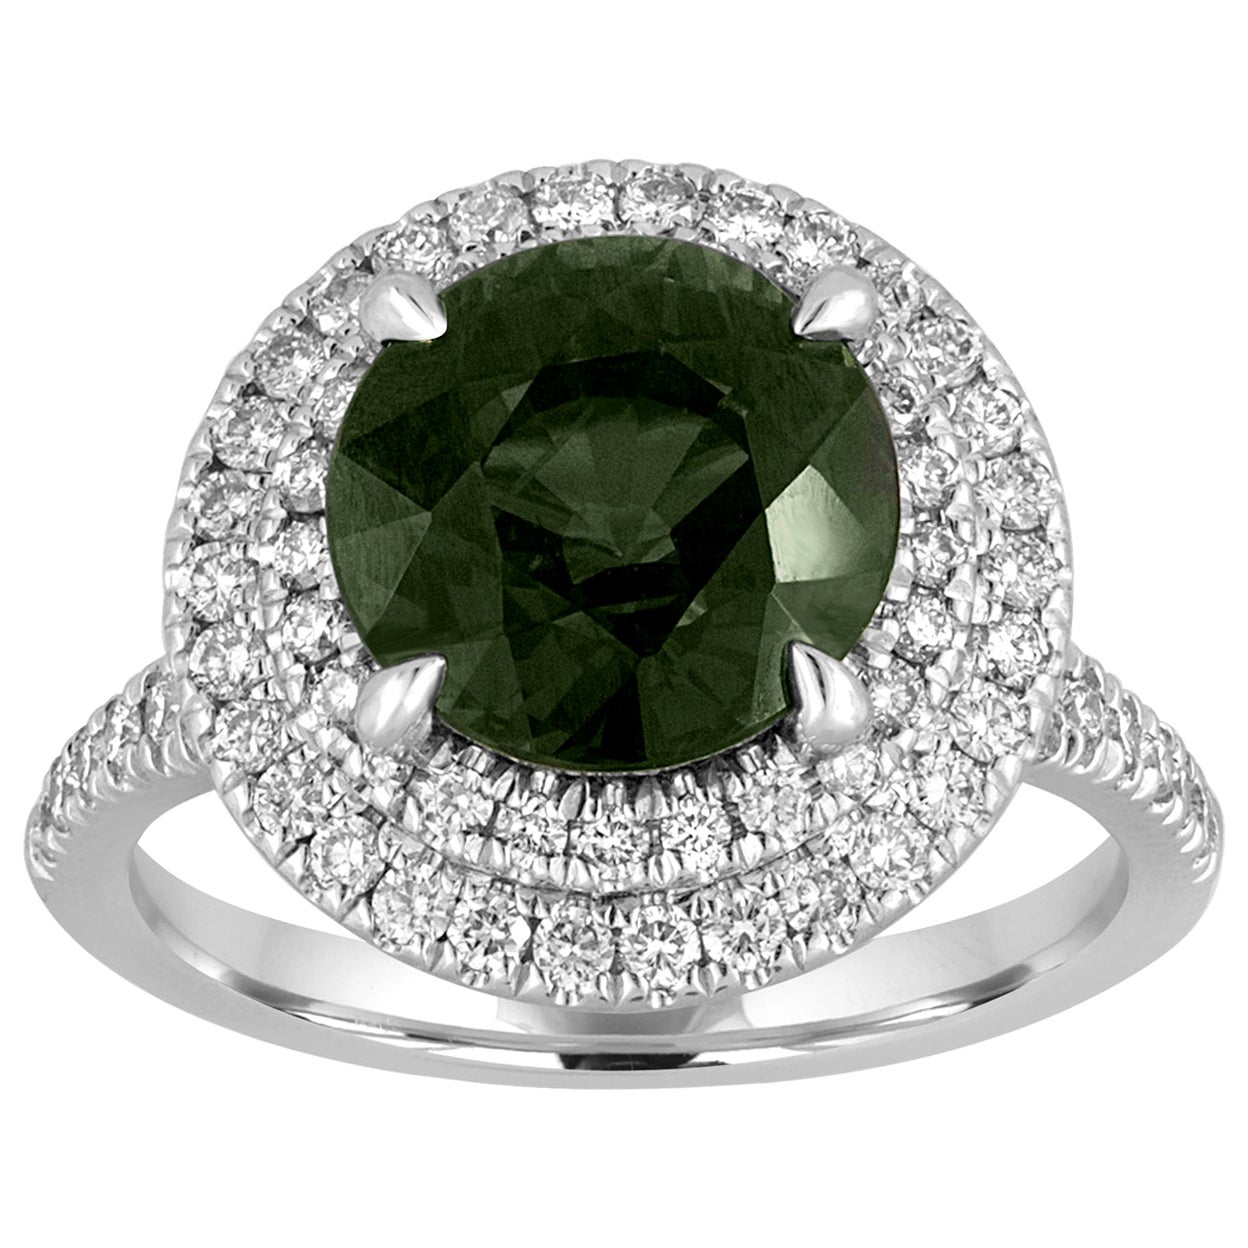 Certified No Heat 5.27 Carat Bluish Green Sapphire Double Halo Diamond Gold Ring